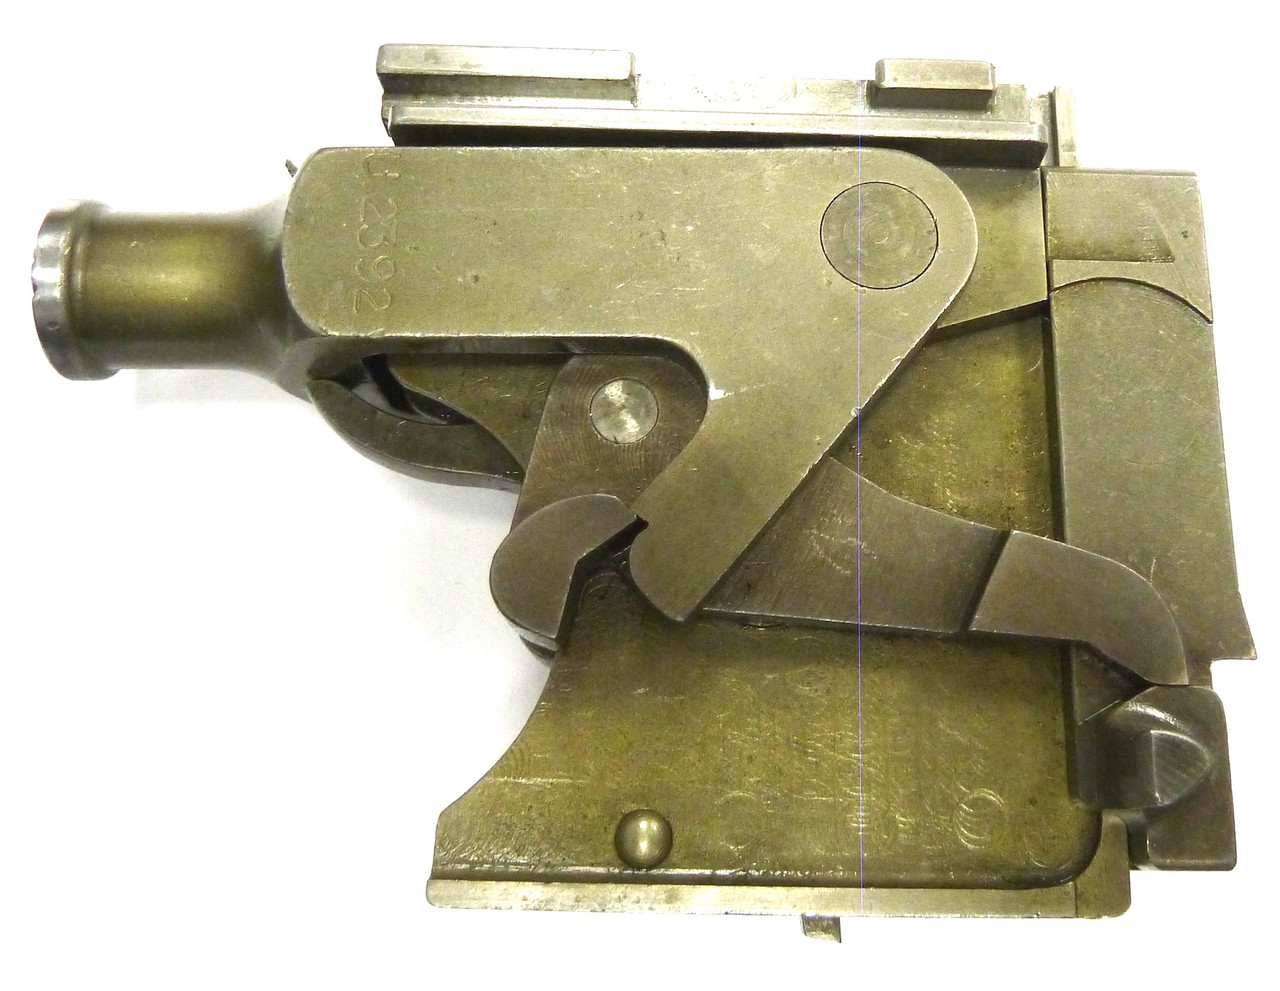 Vickers Lock Assembly - S81 - ex.+ cond., w/extra lock spring